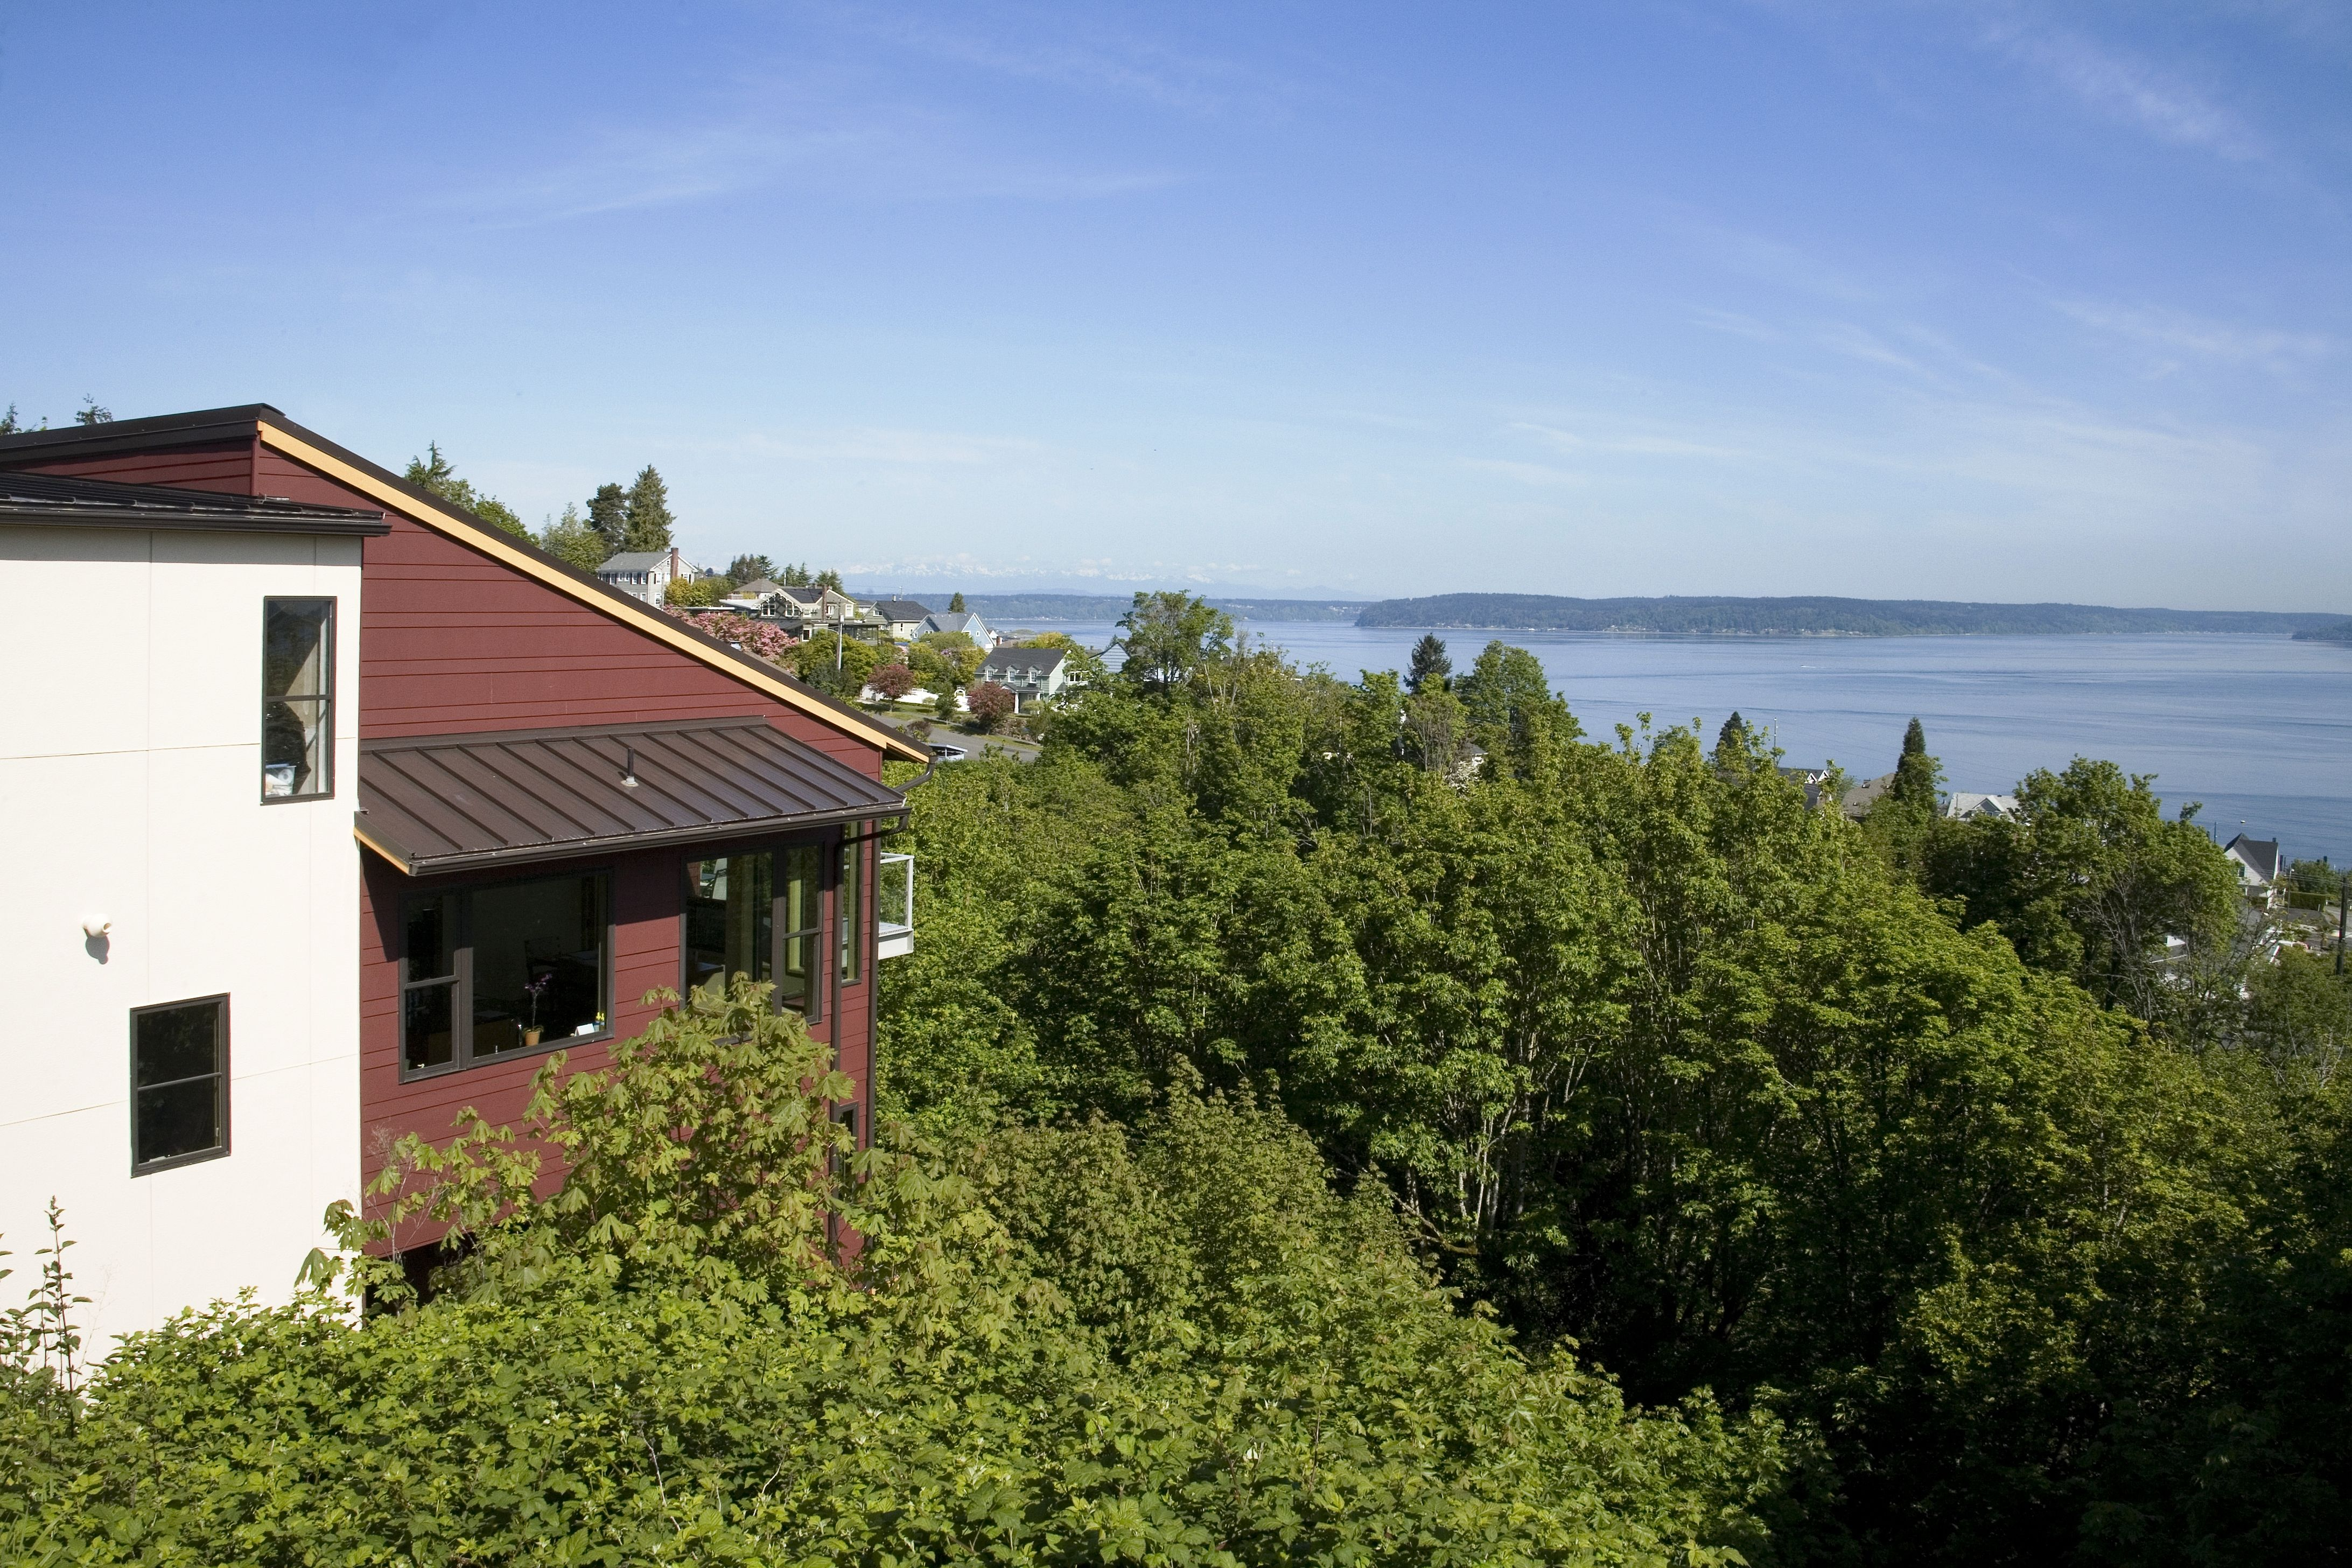 Choice Construction, Remodel, Custom Homes, Gig Harbor, Home Exterior, Modern, View